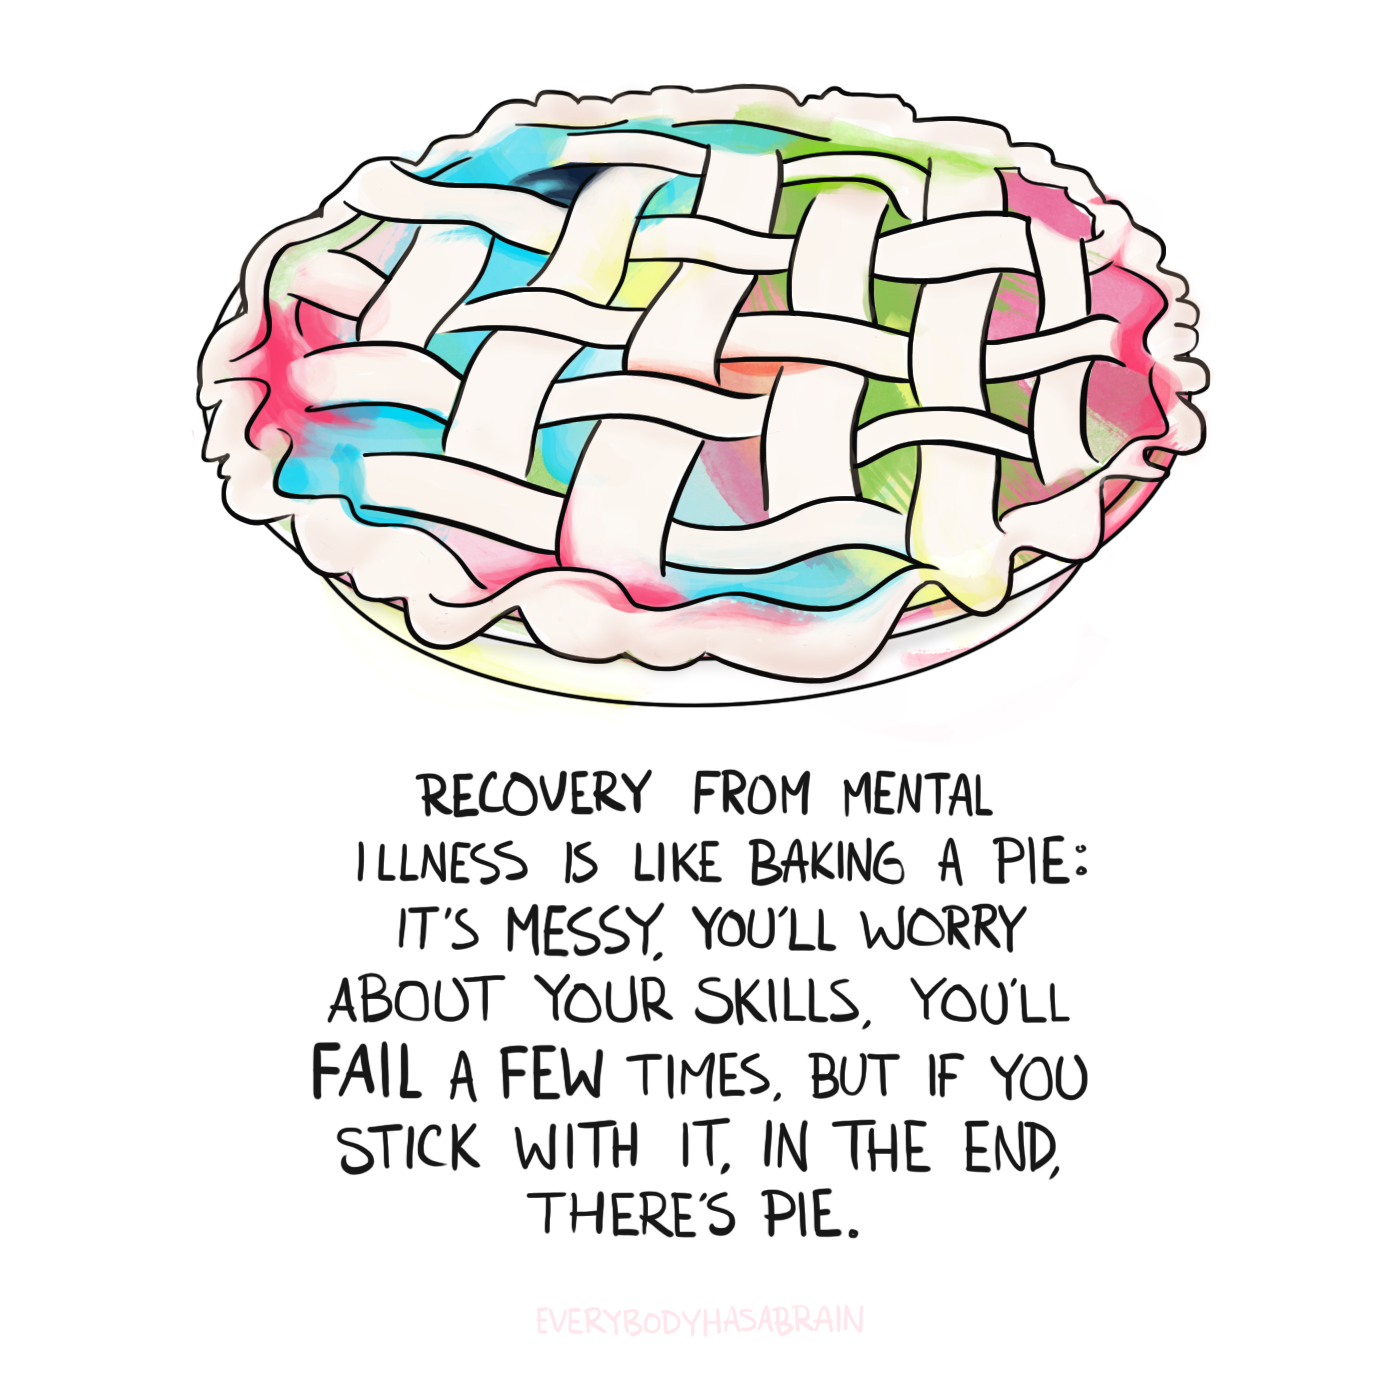 How to Recover from Mental Illness